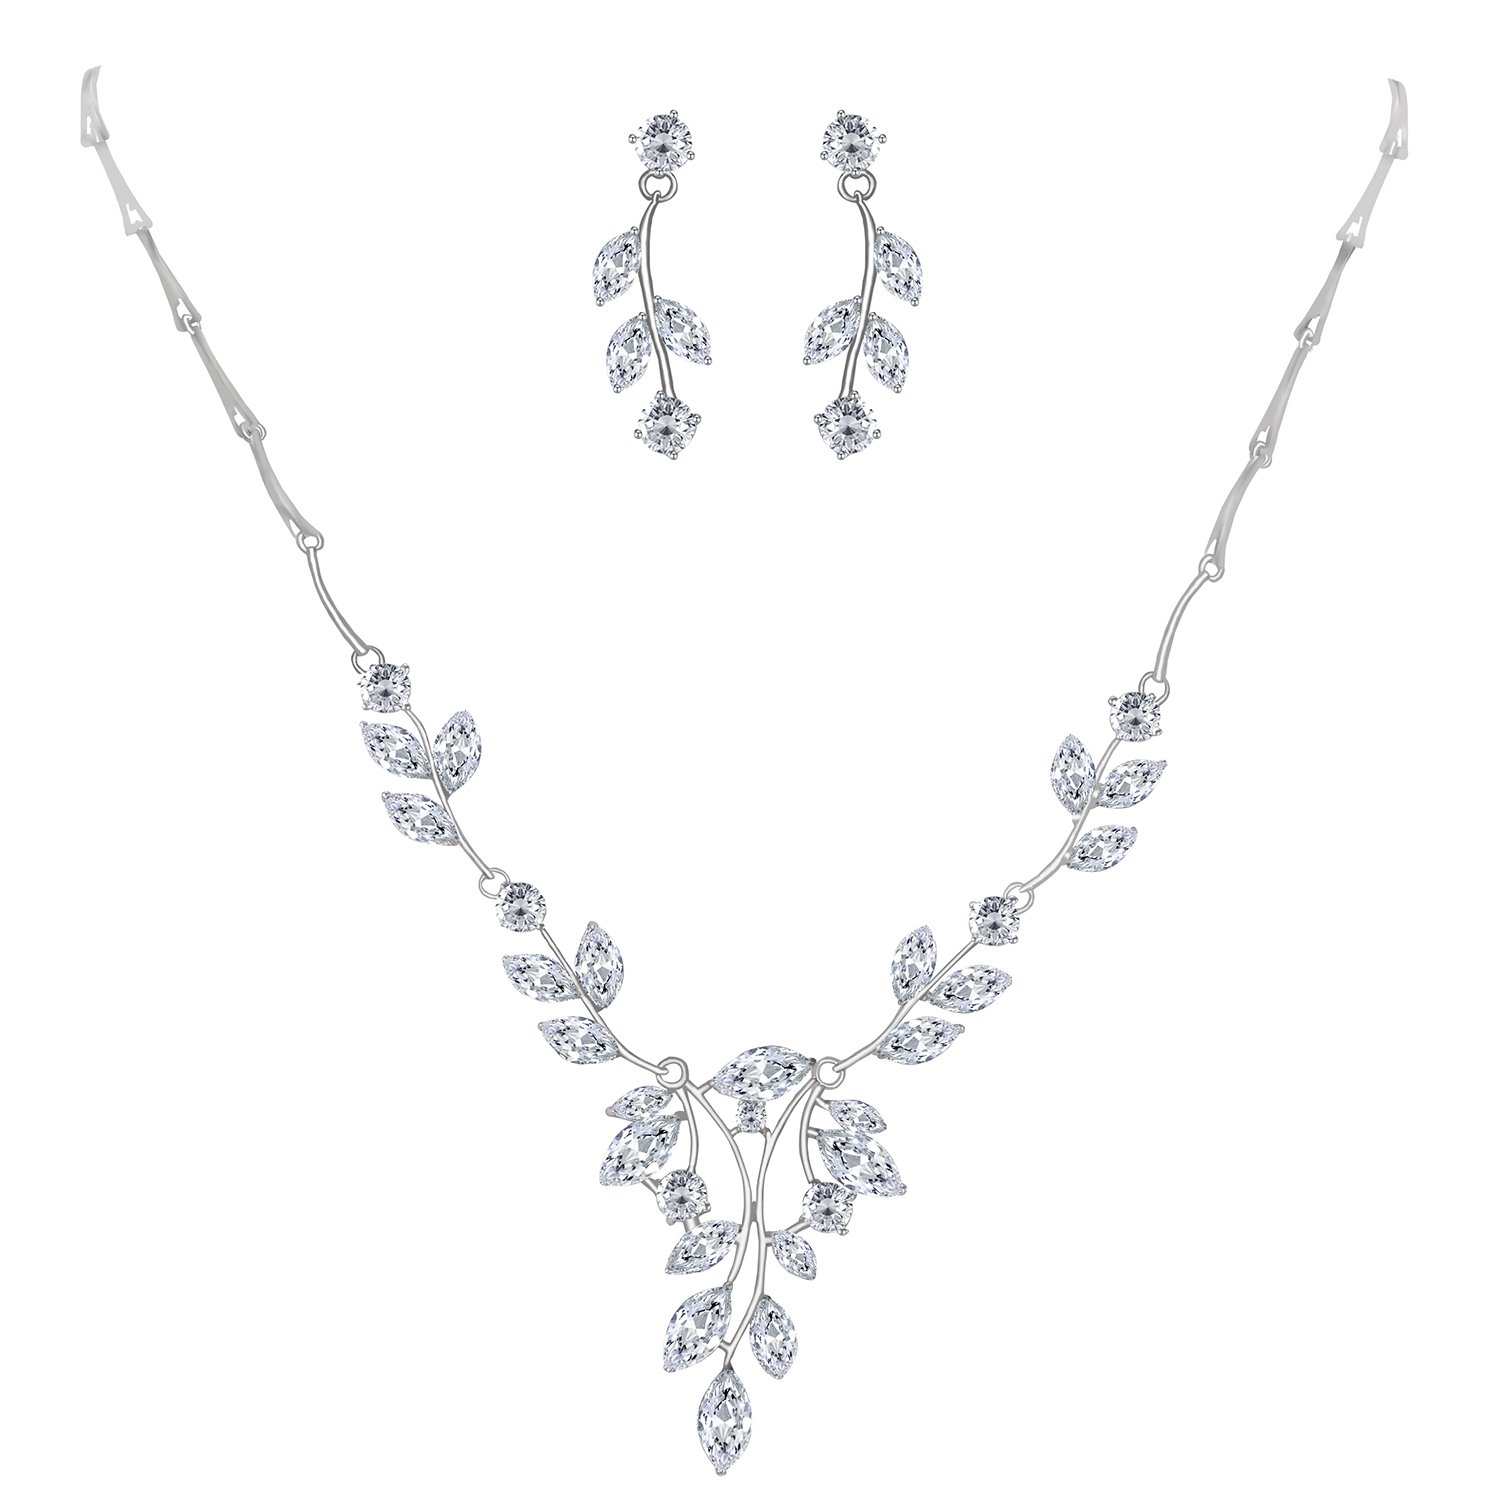 LILIE&WHITE Cubic Zircon Necklace and Earrings Jewelry Set For Bride Wedding Prom Bridesmaids